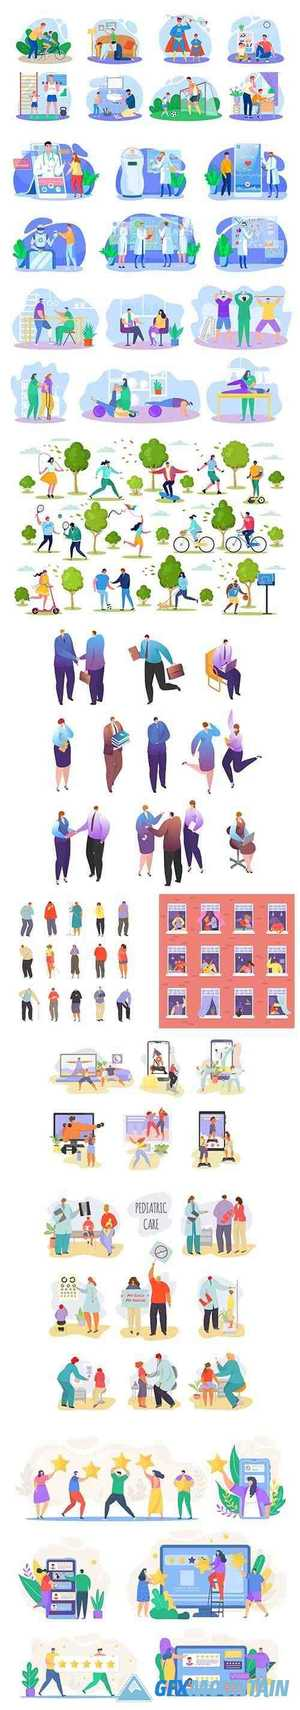 Flat Cartoon Illustration with People Set